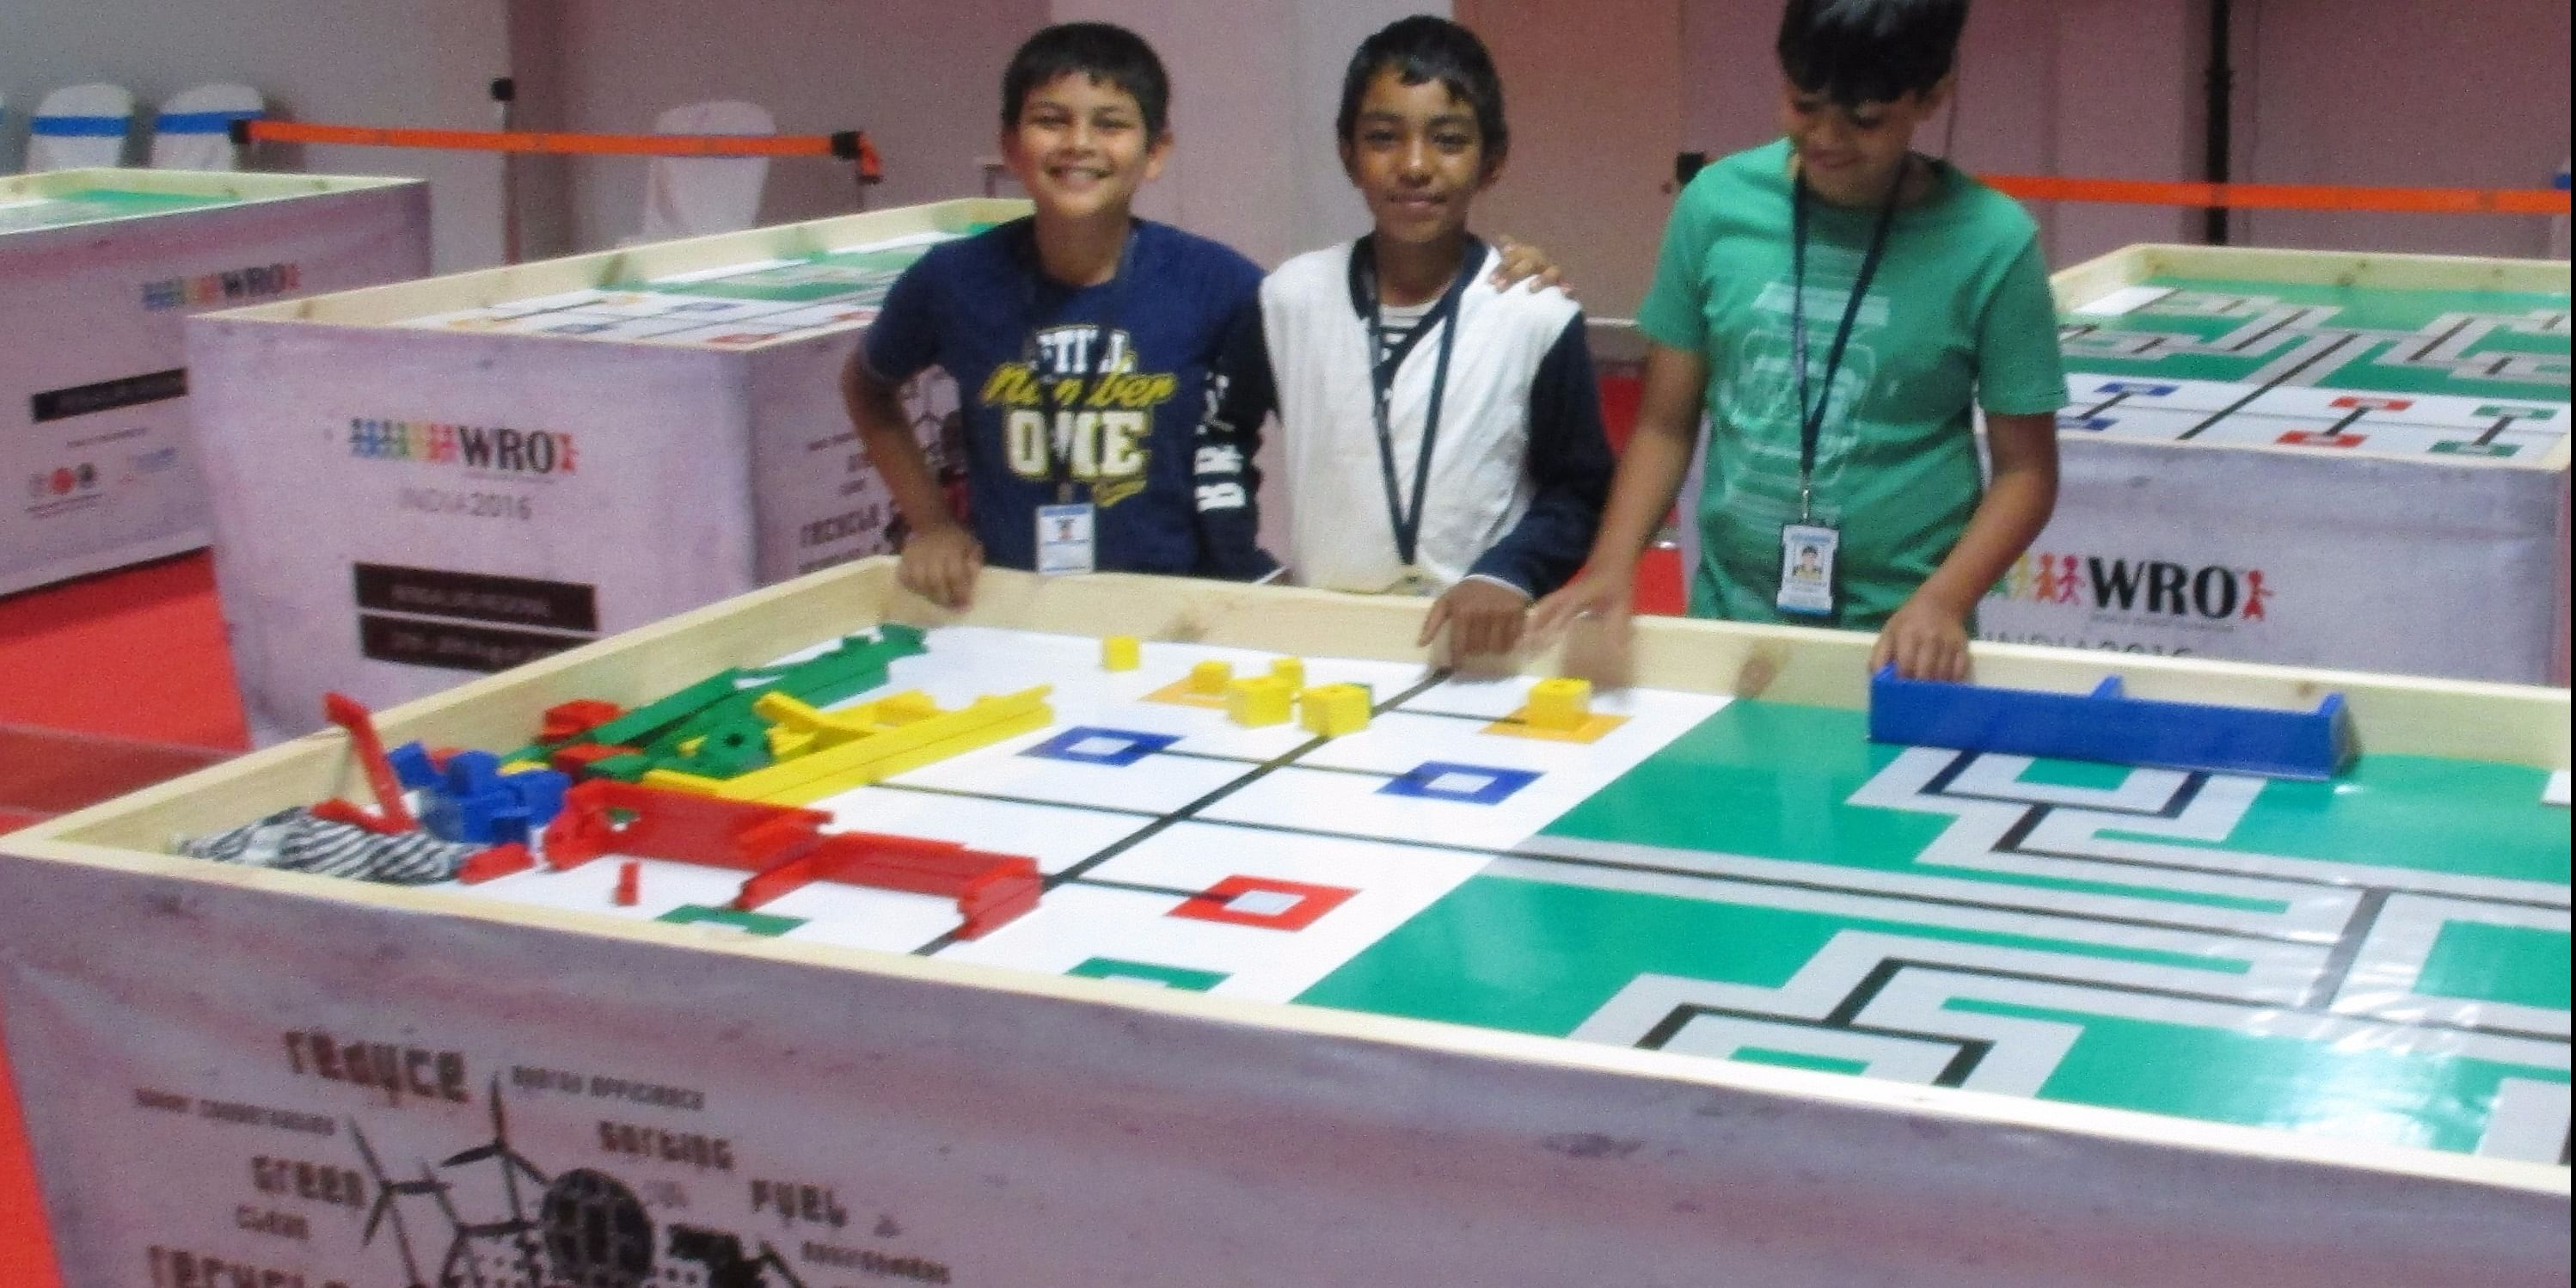 <h3>Aadi Sureka, Anirudh and Marc George - Qualified Regional Round and Entered National Championship<br></h3>